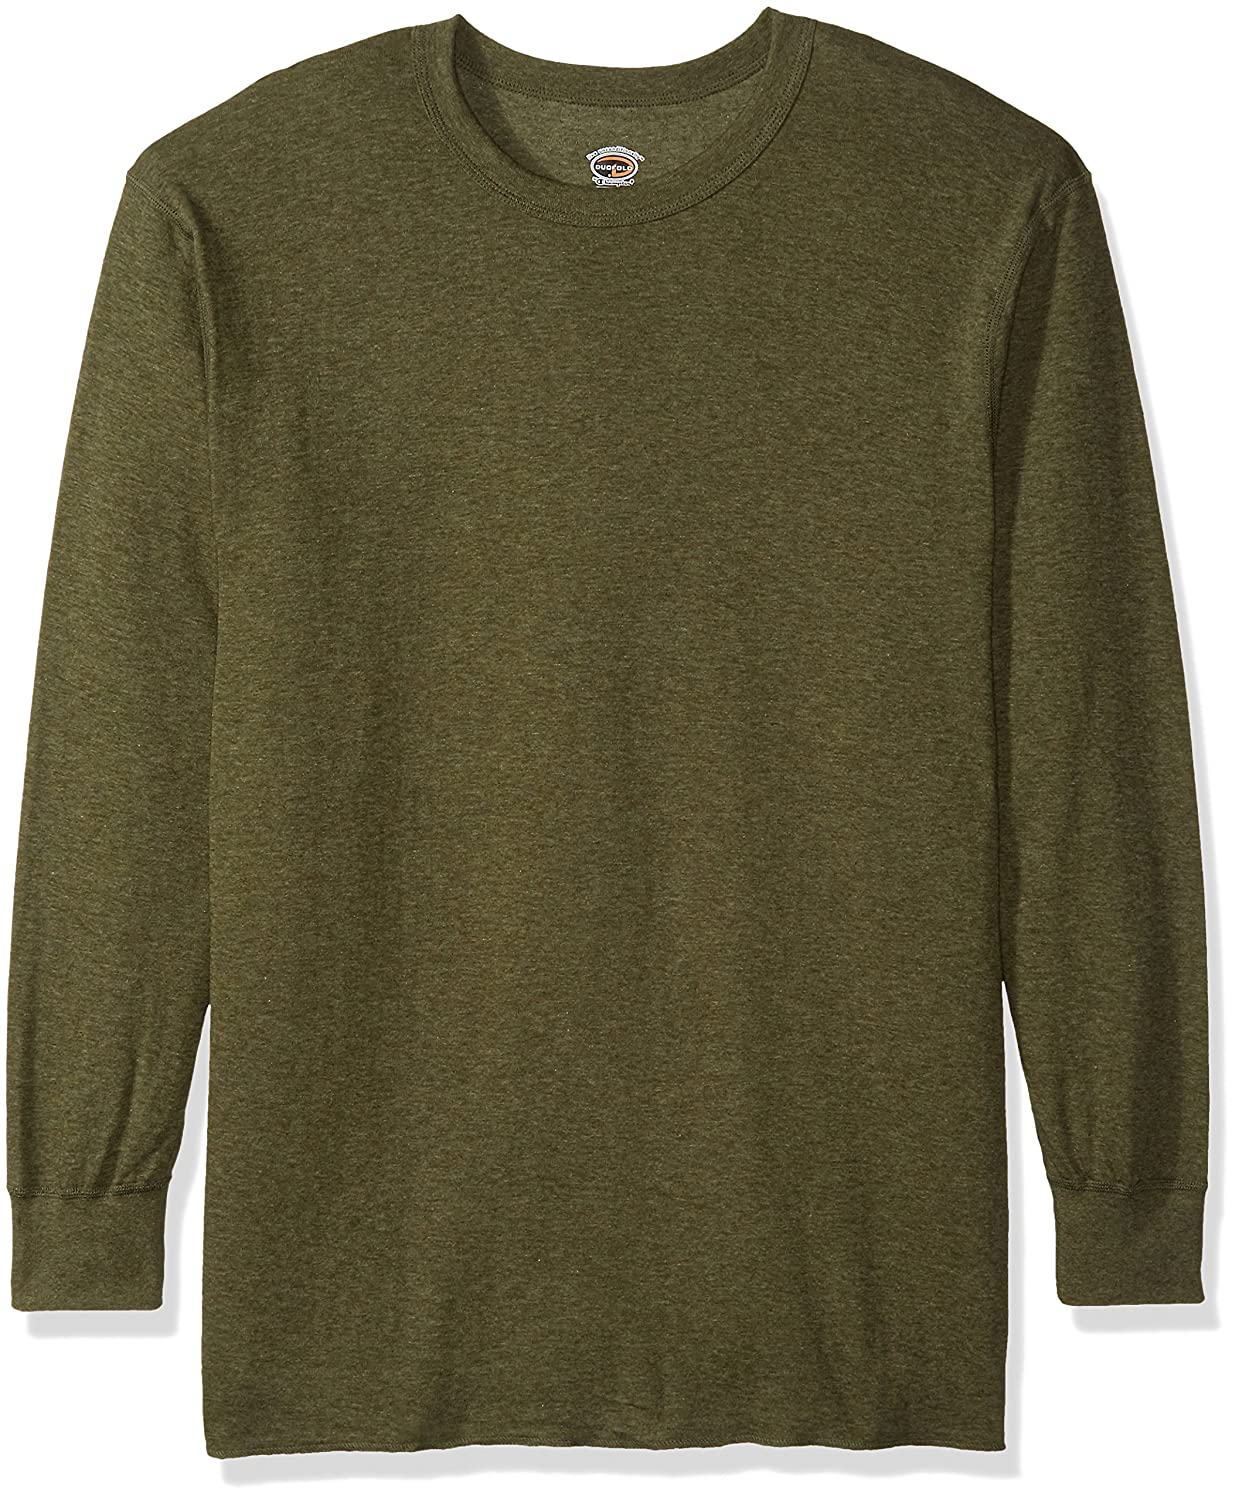 Duofold Men's Mid-Weight Crew Thermal Shirt Neck Thermal Shirt Sleepwear Olive Heather 2X Large KMO1